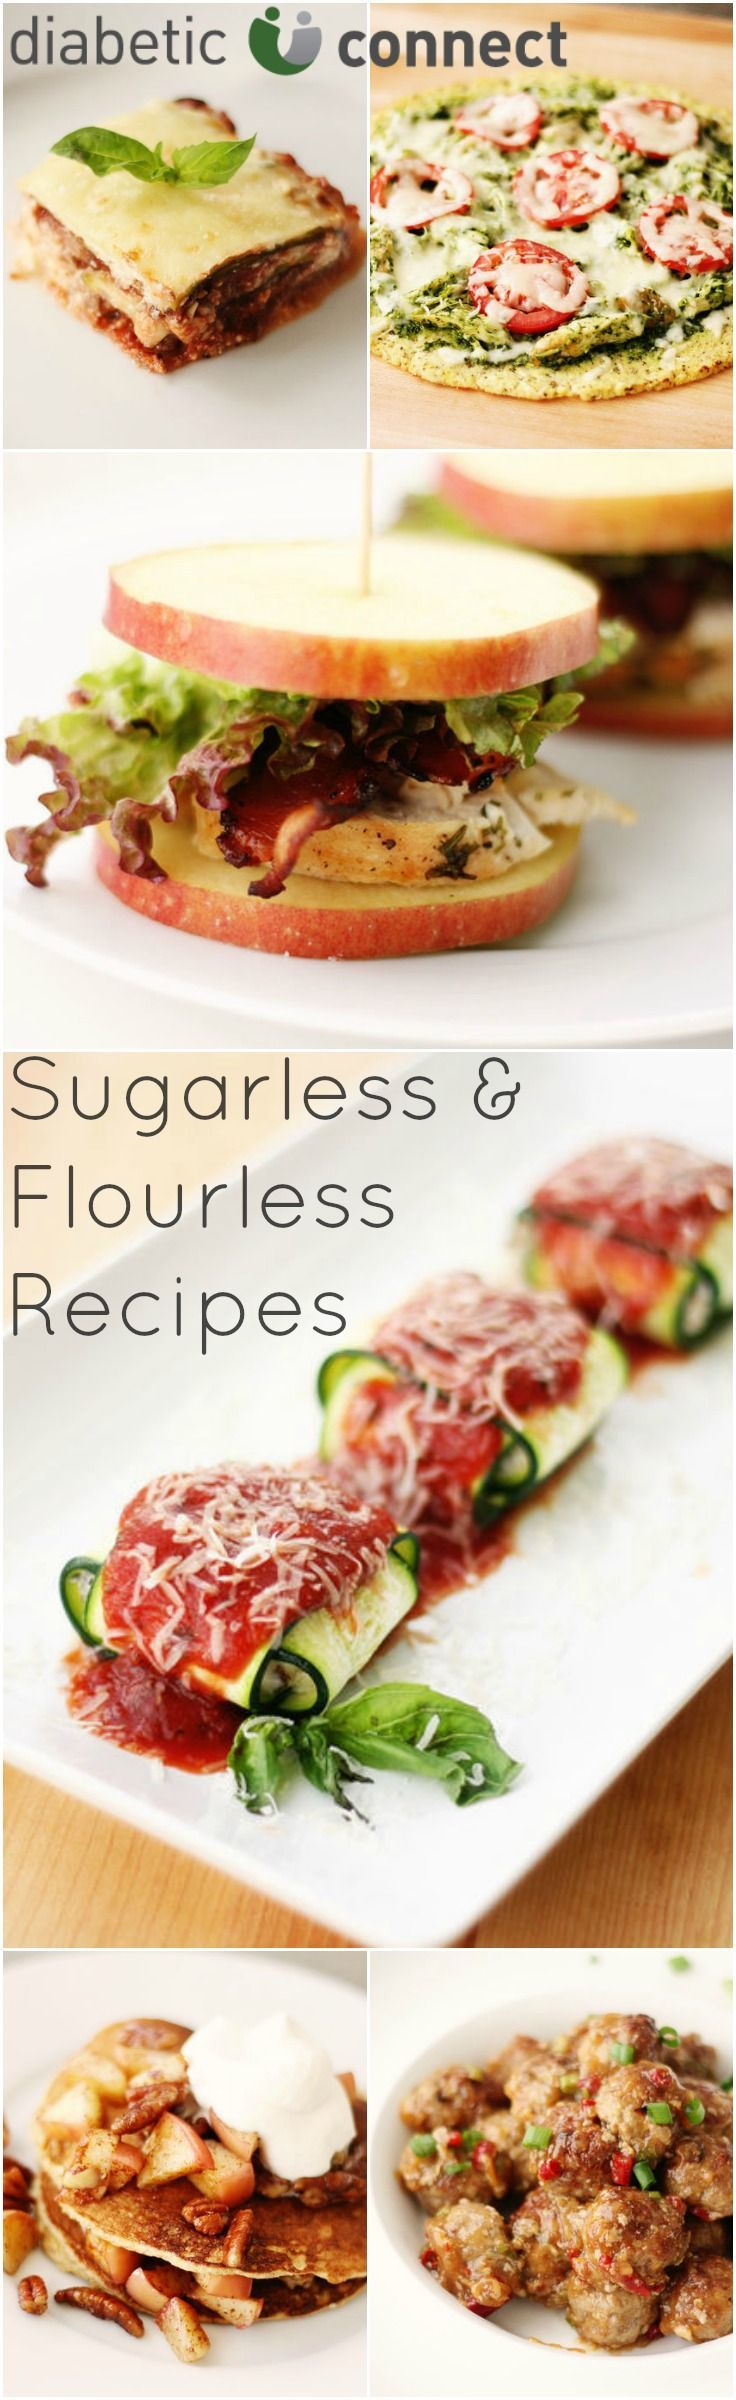 Say goodbye to all the carbs in white flour and sugar with this mouth-watering collection of recipes for breakfast, lunch dinner and dessert. With receipes for Cauliflower Crust Pizza, Sausage Zucchini Ravioli and Rosemary Chicken Bacon Apple Sliders you